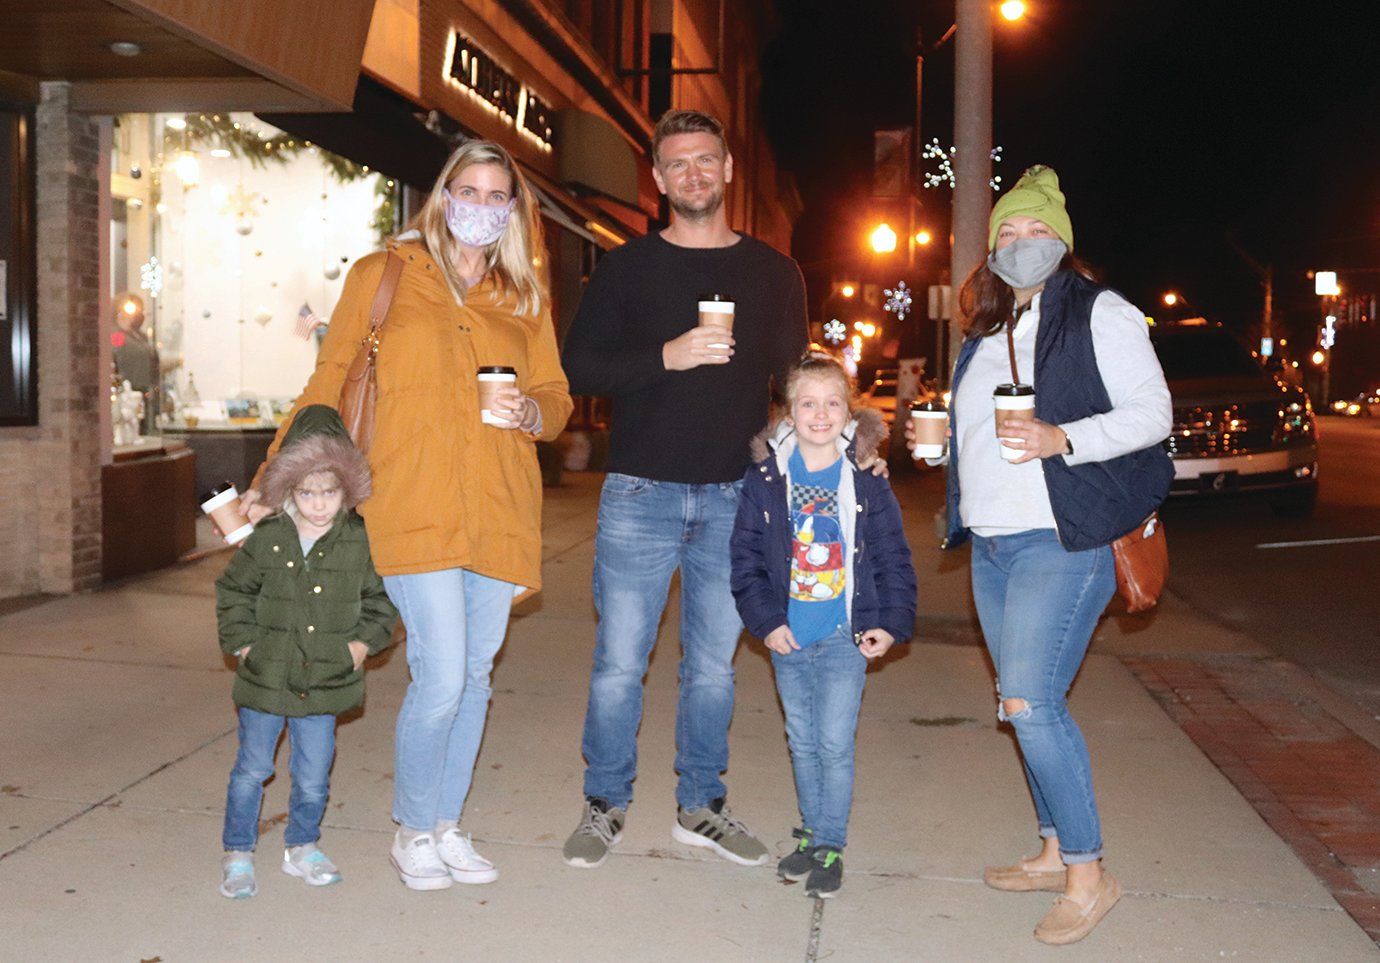 Richelle and Dan Jeffries and daughters Caytlin and Caroline enjoy hot drinks on a crisp night with friend Jamie Selby, right, downtown during Shop Small Saturday.